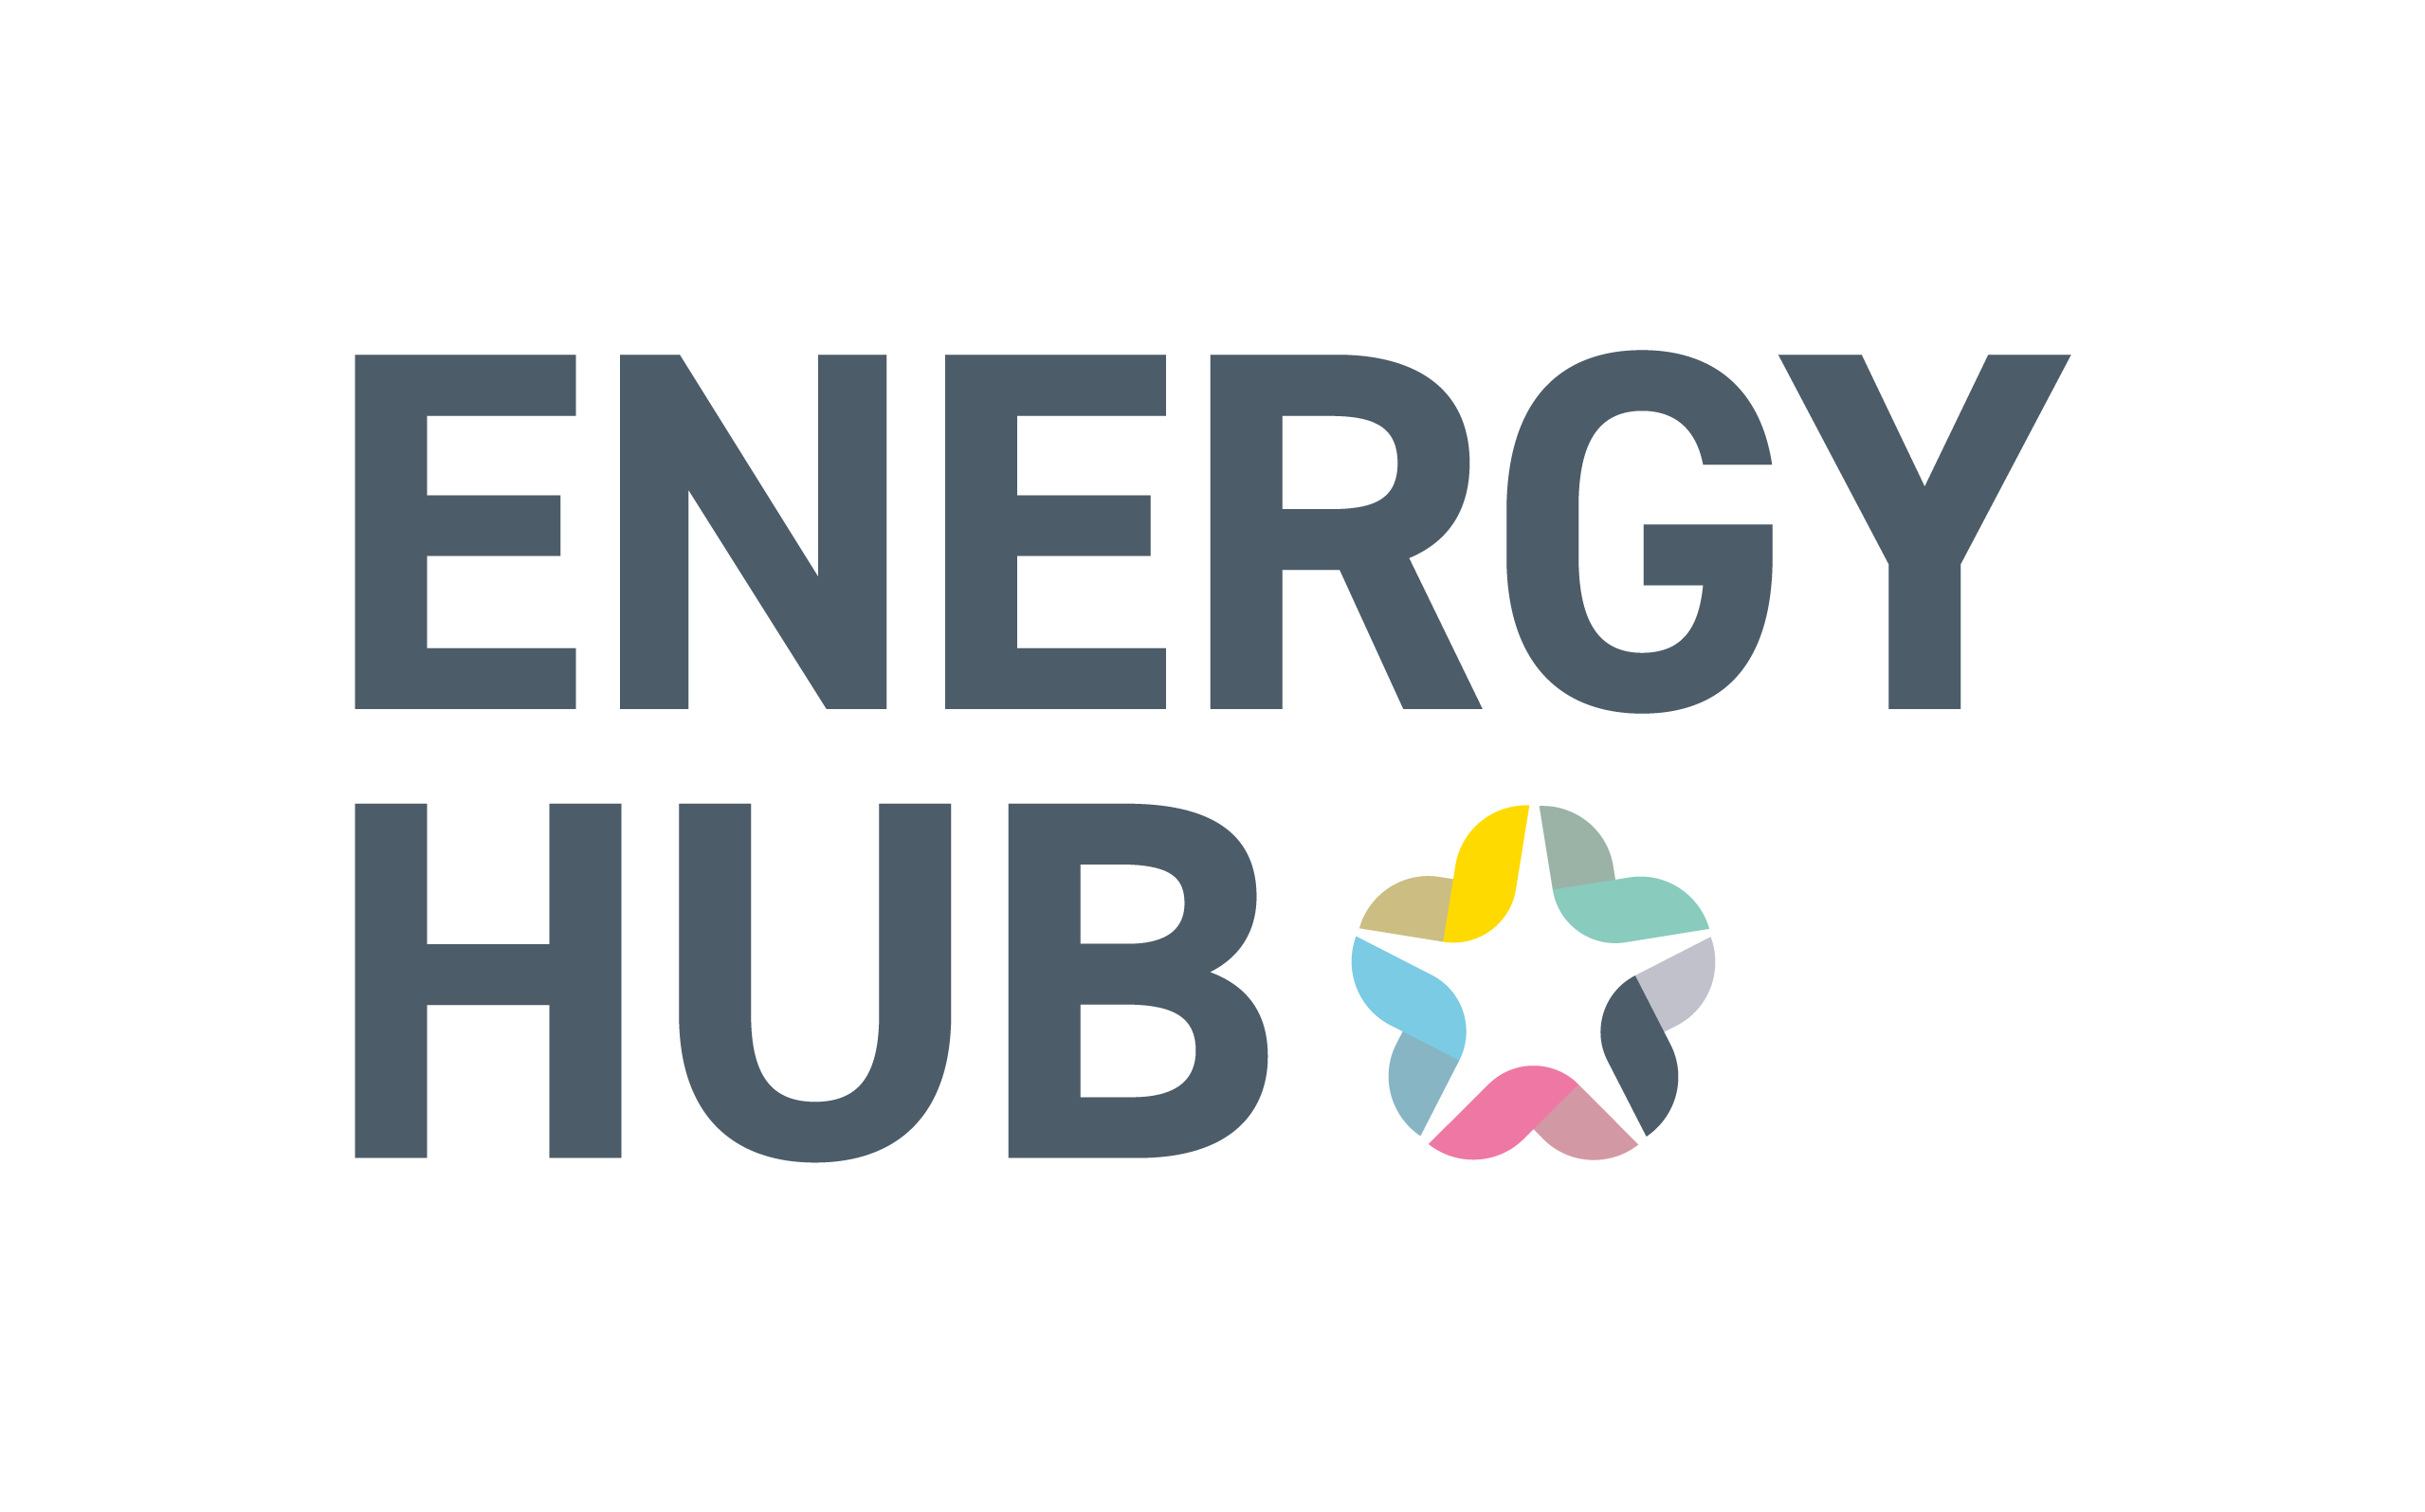 This image shows the logo of the Energy Hub.